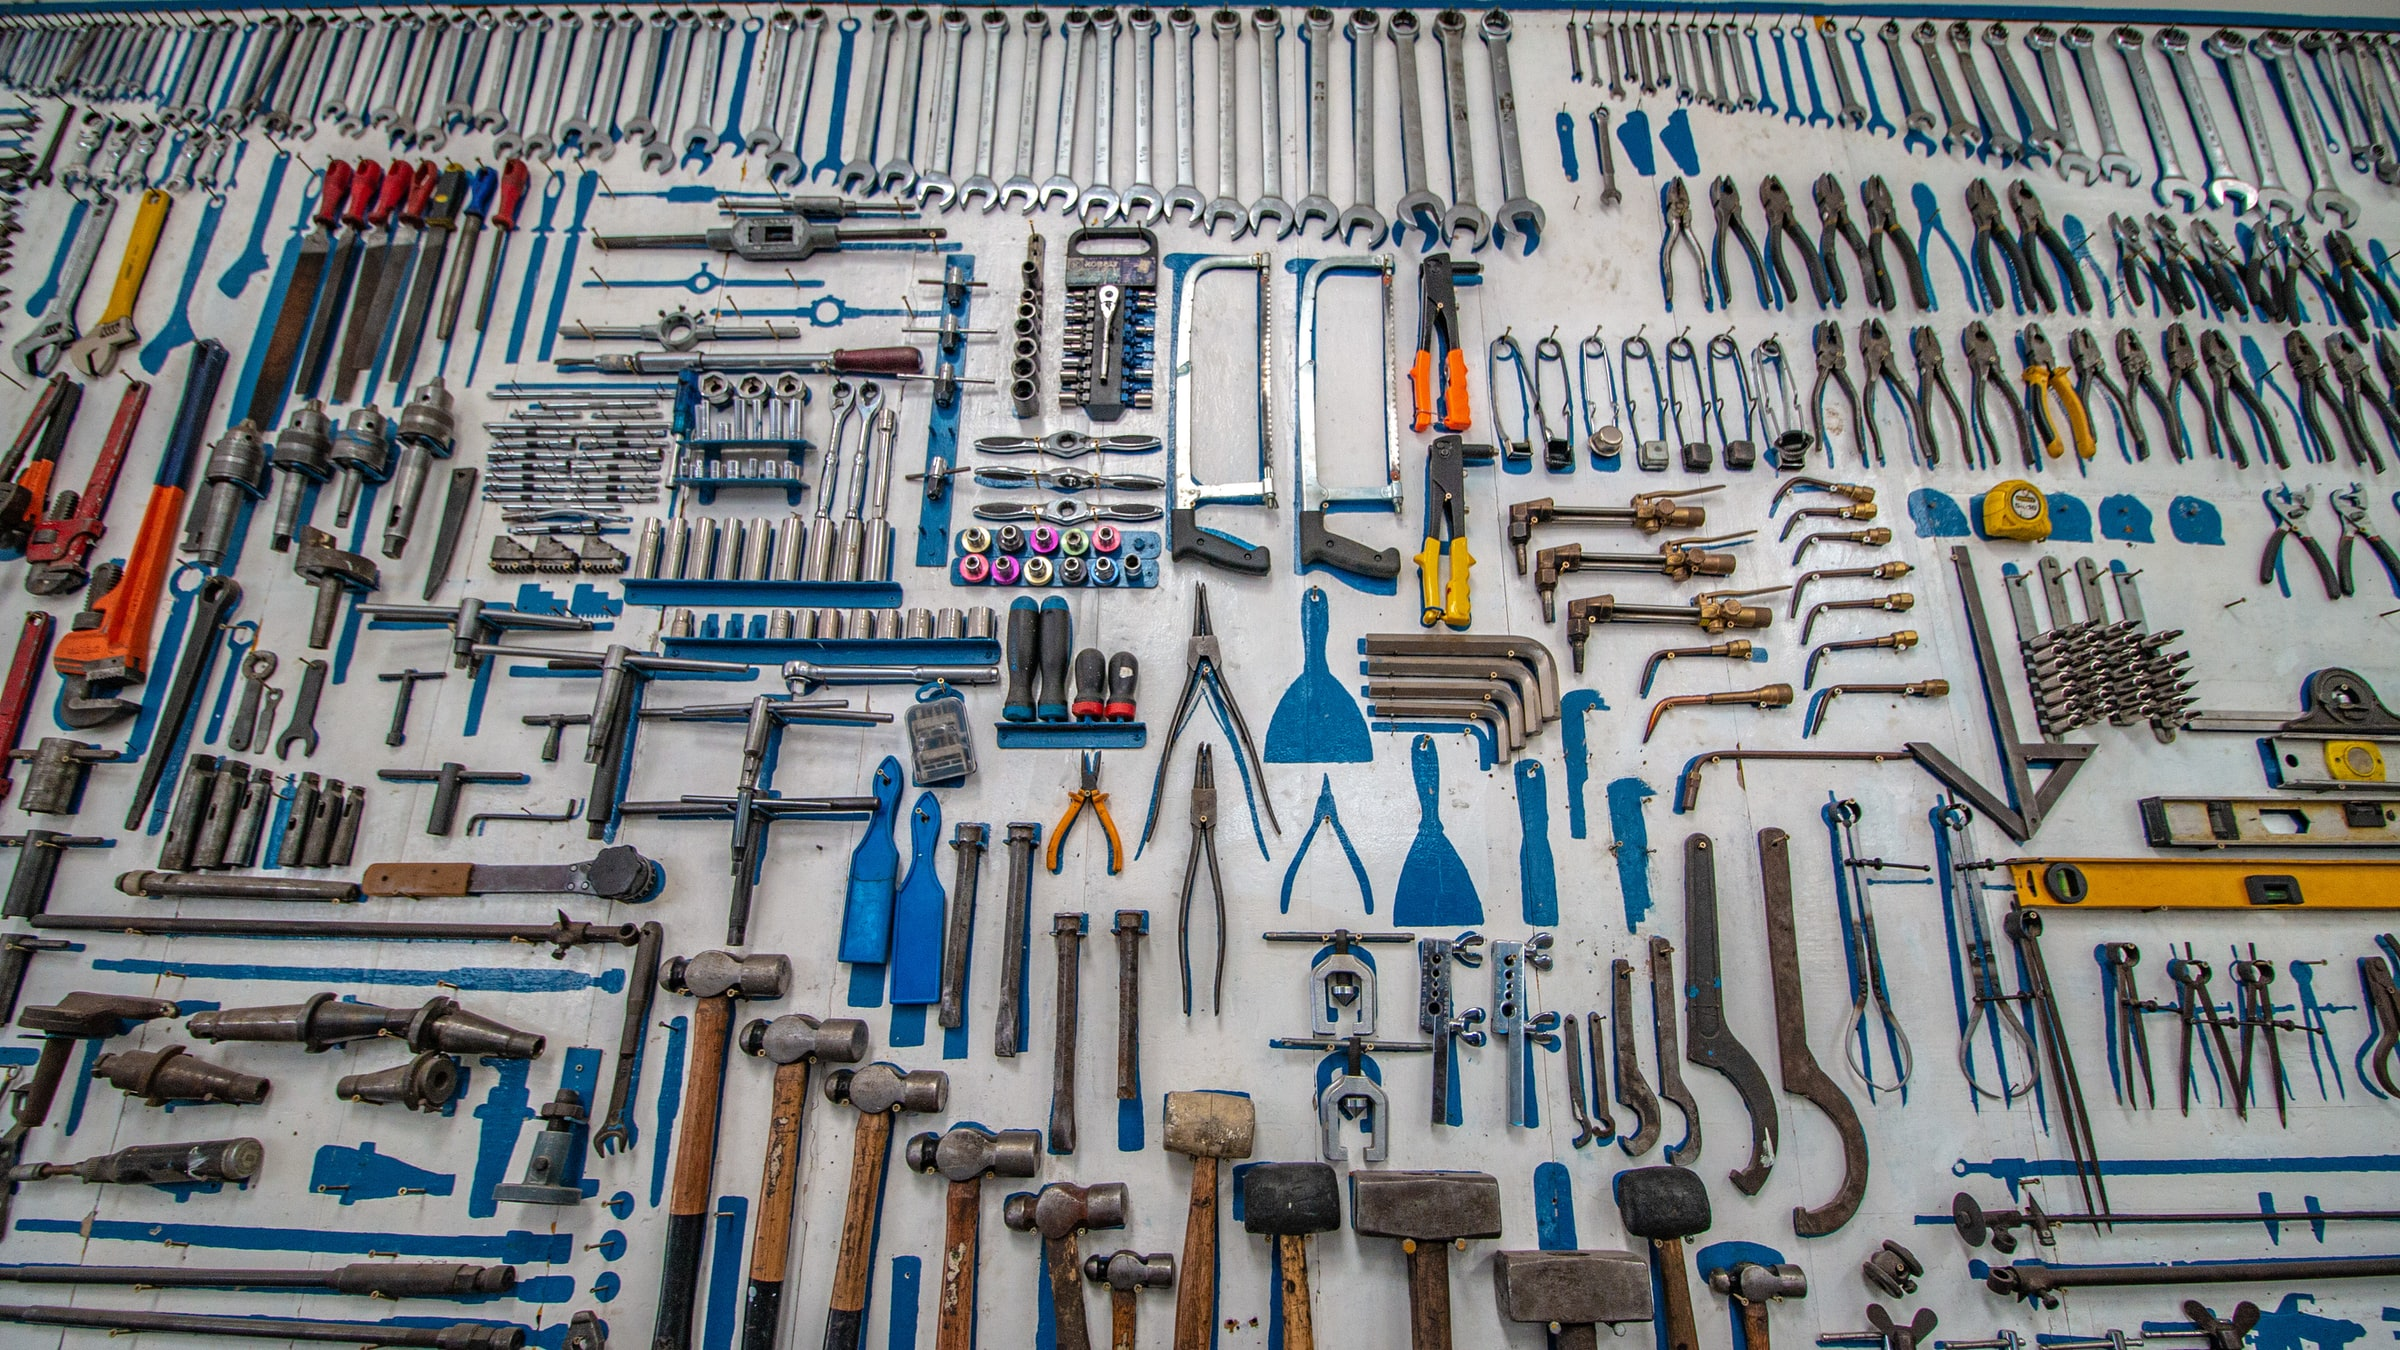 Nice layout of tools